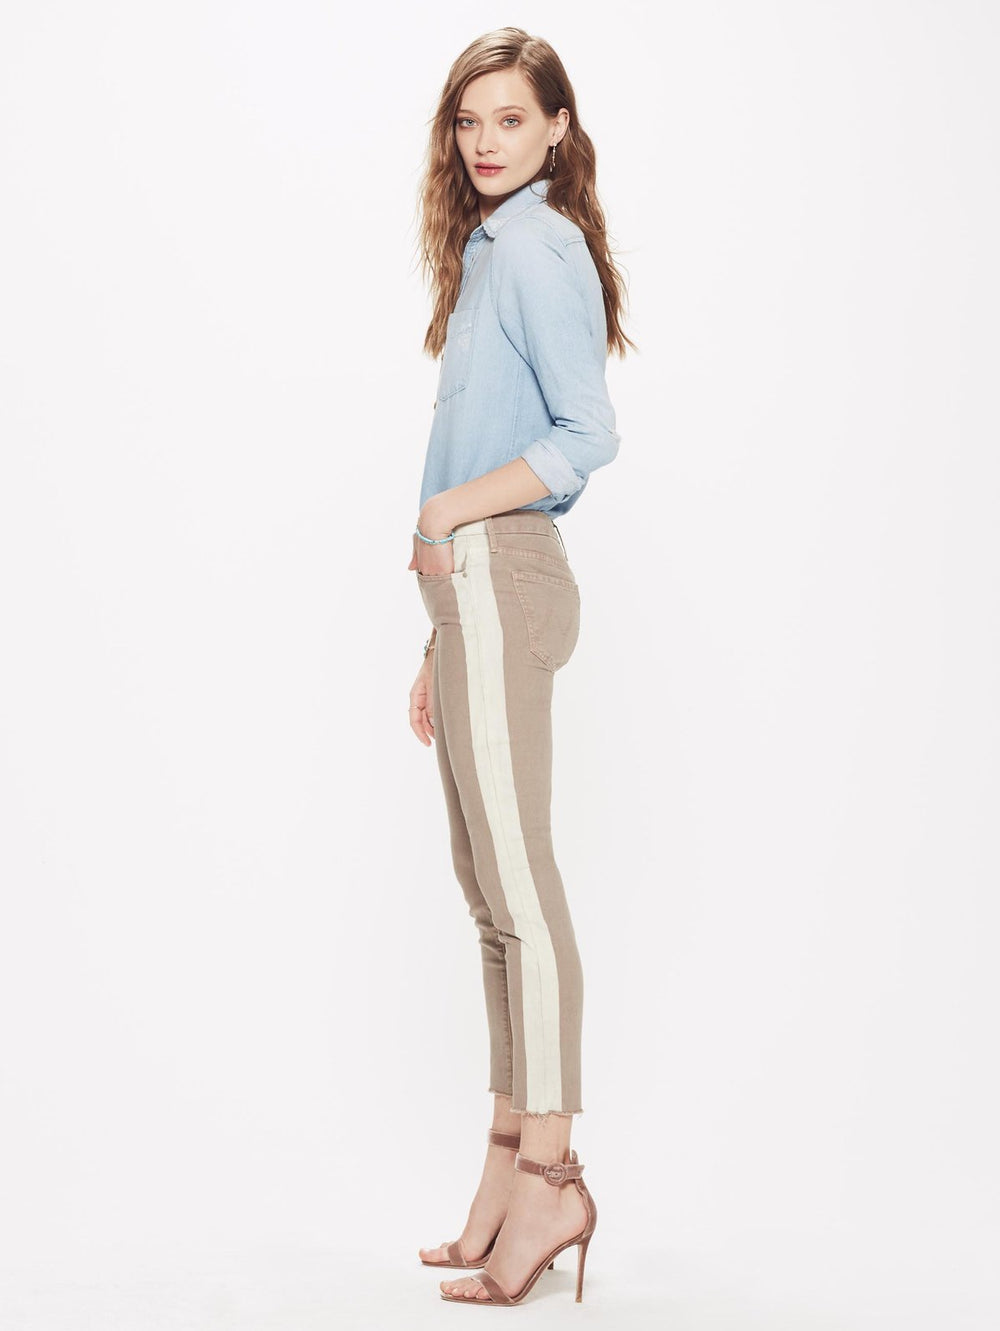 Looker Ankle Fray Jean - So Far Gone Khaki/Stone at Maximillia eBoutique